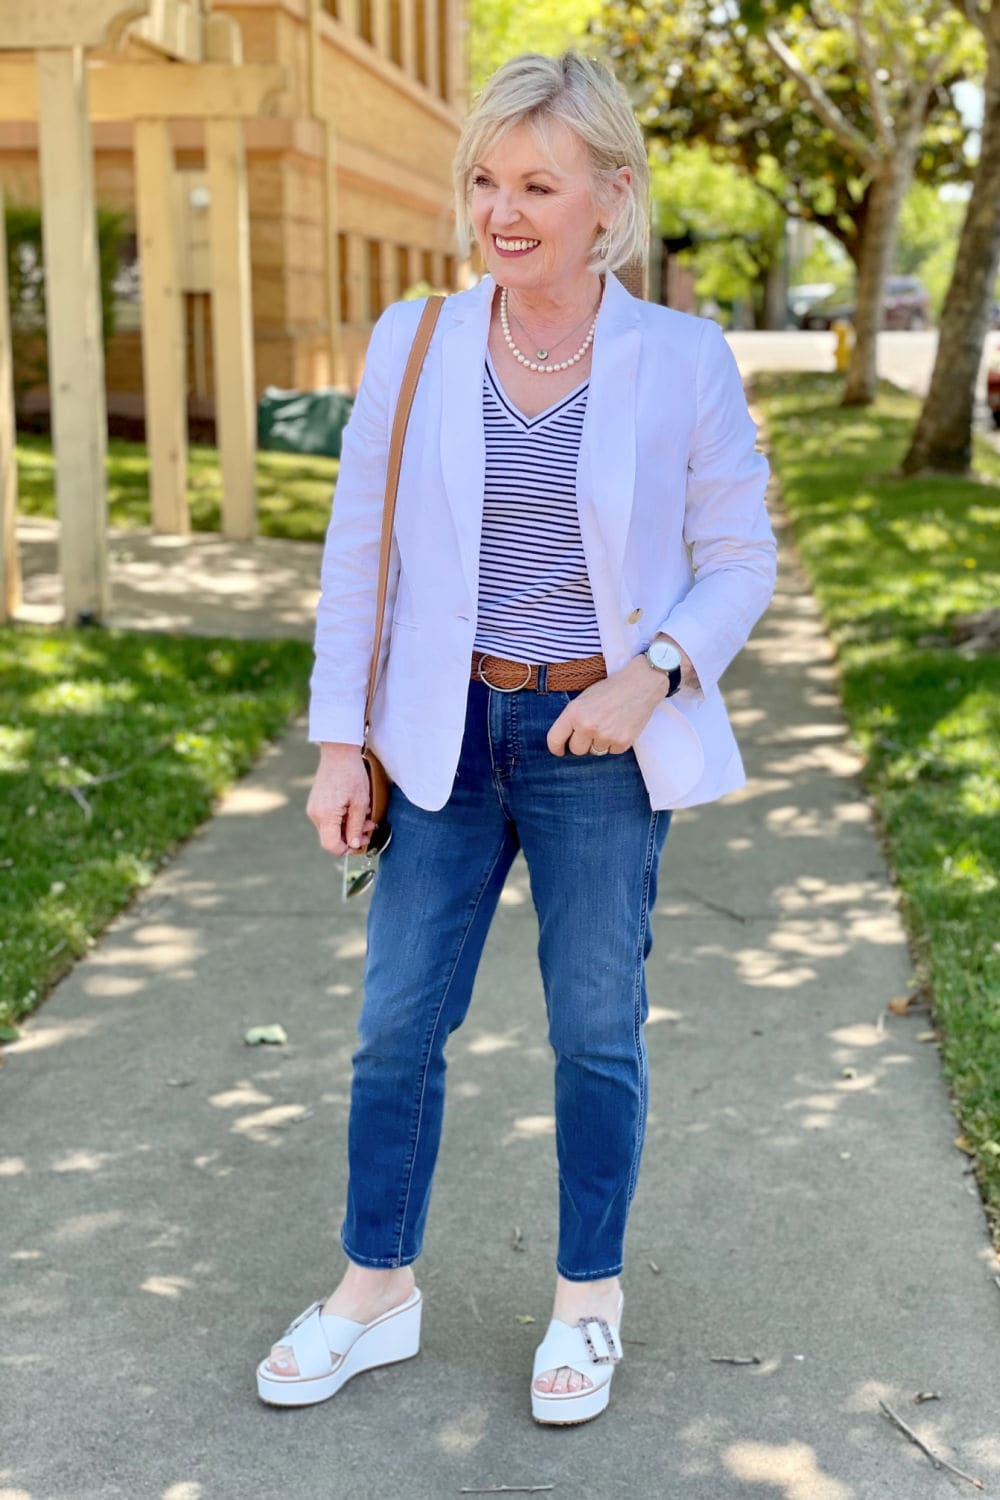 woman on sidewalk smiling at camera wearing mirrored sunglasses, jeans and striped tee